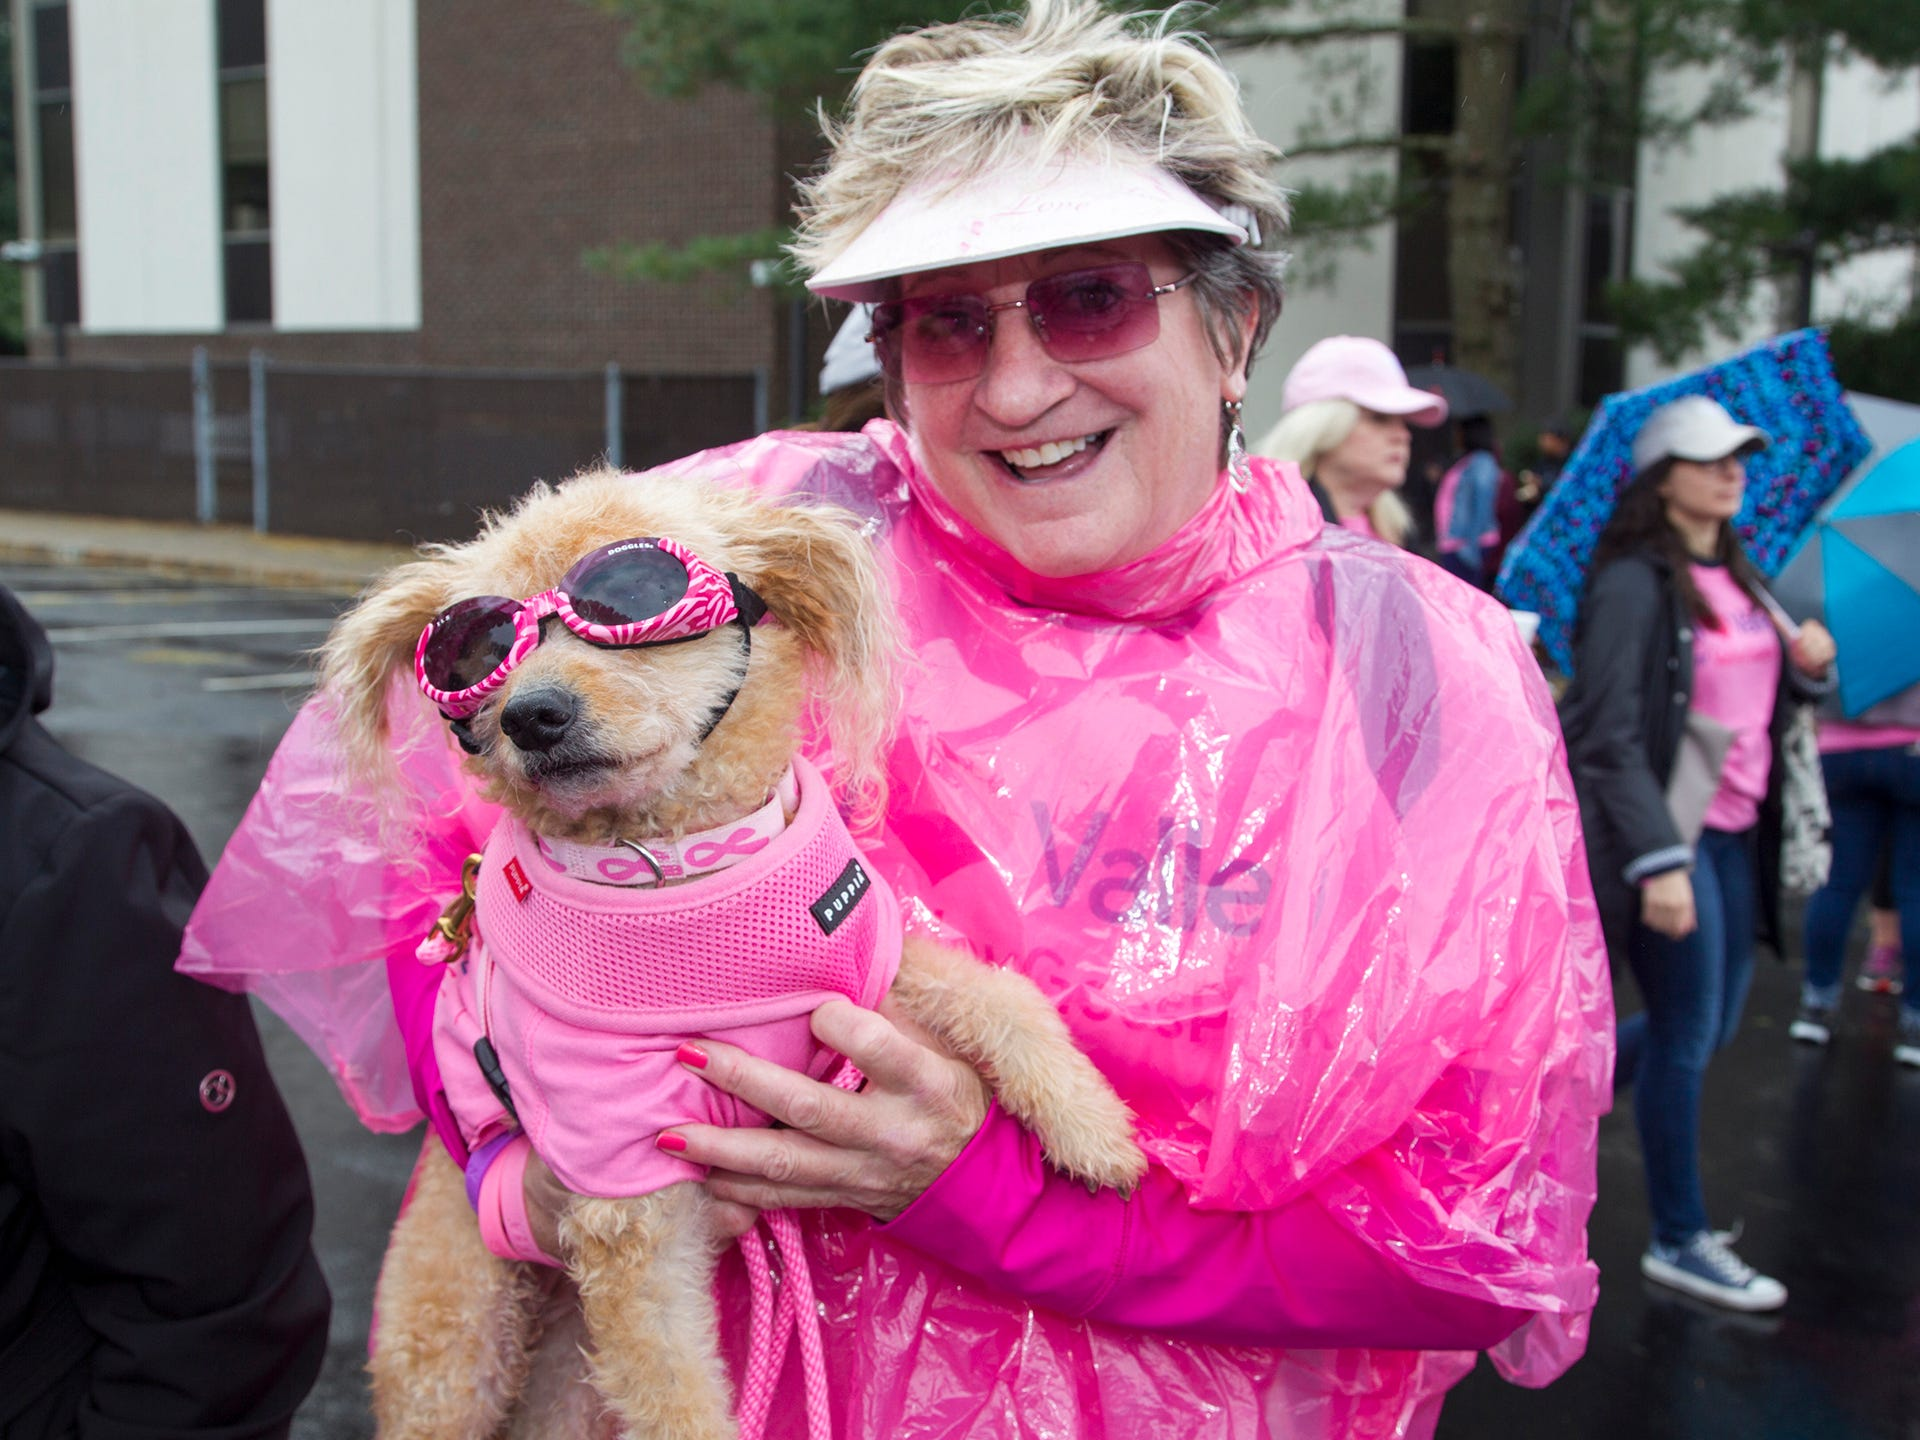 Sophie and Pam Werner. Valley National Bank held its 10th annual Breast Cancer Walk in Wayne. 10/13/2018